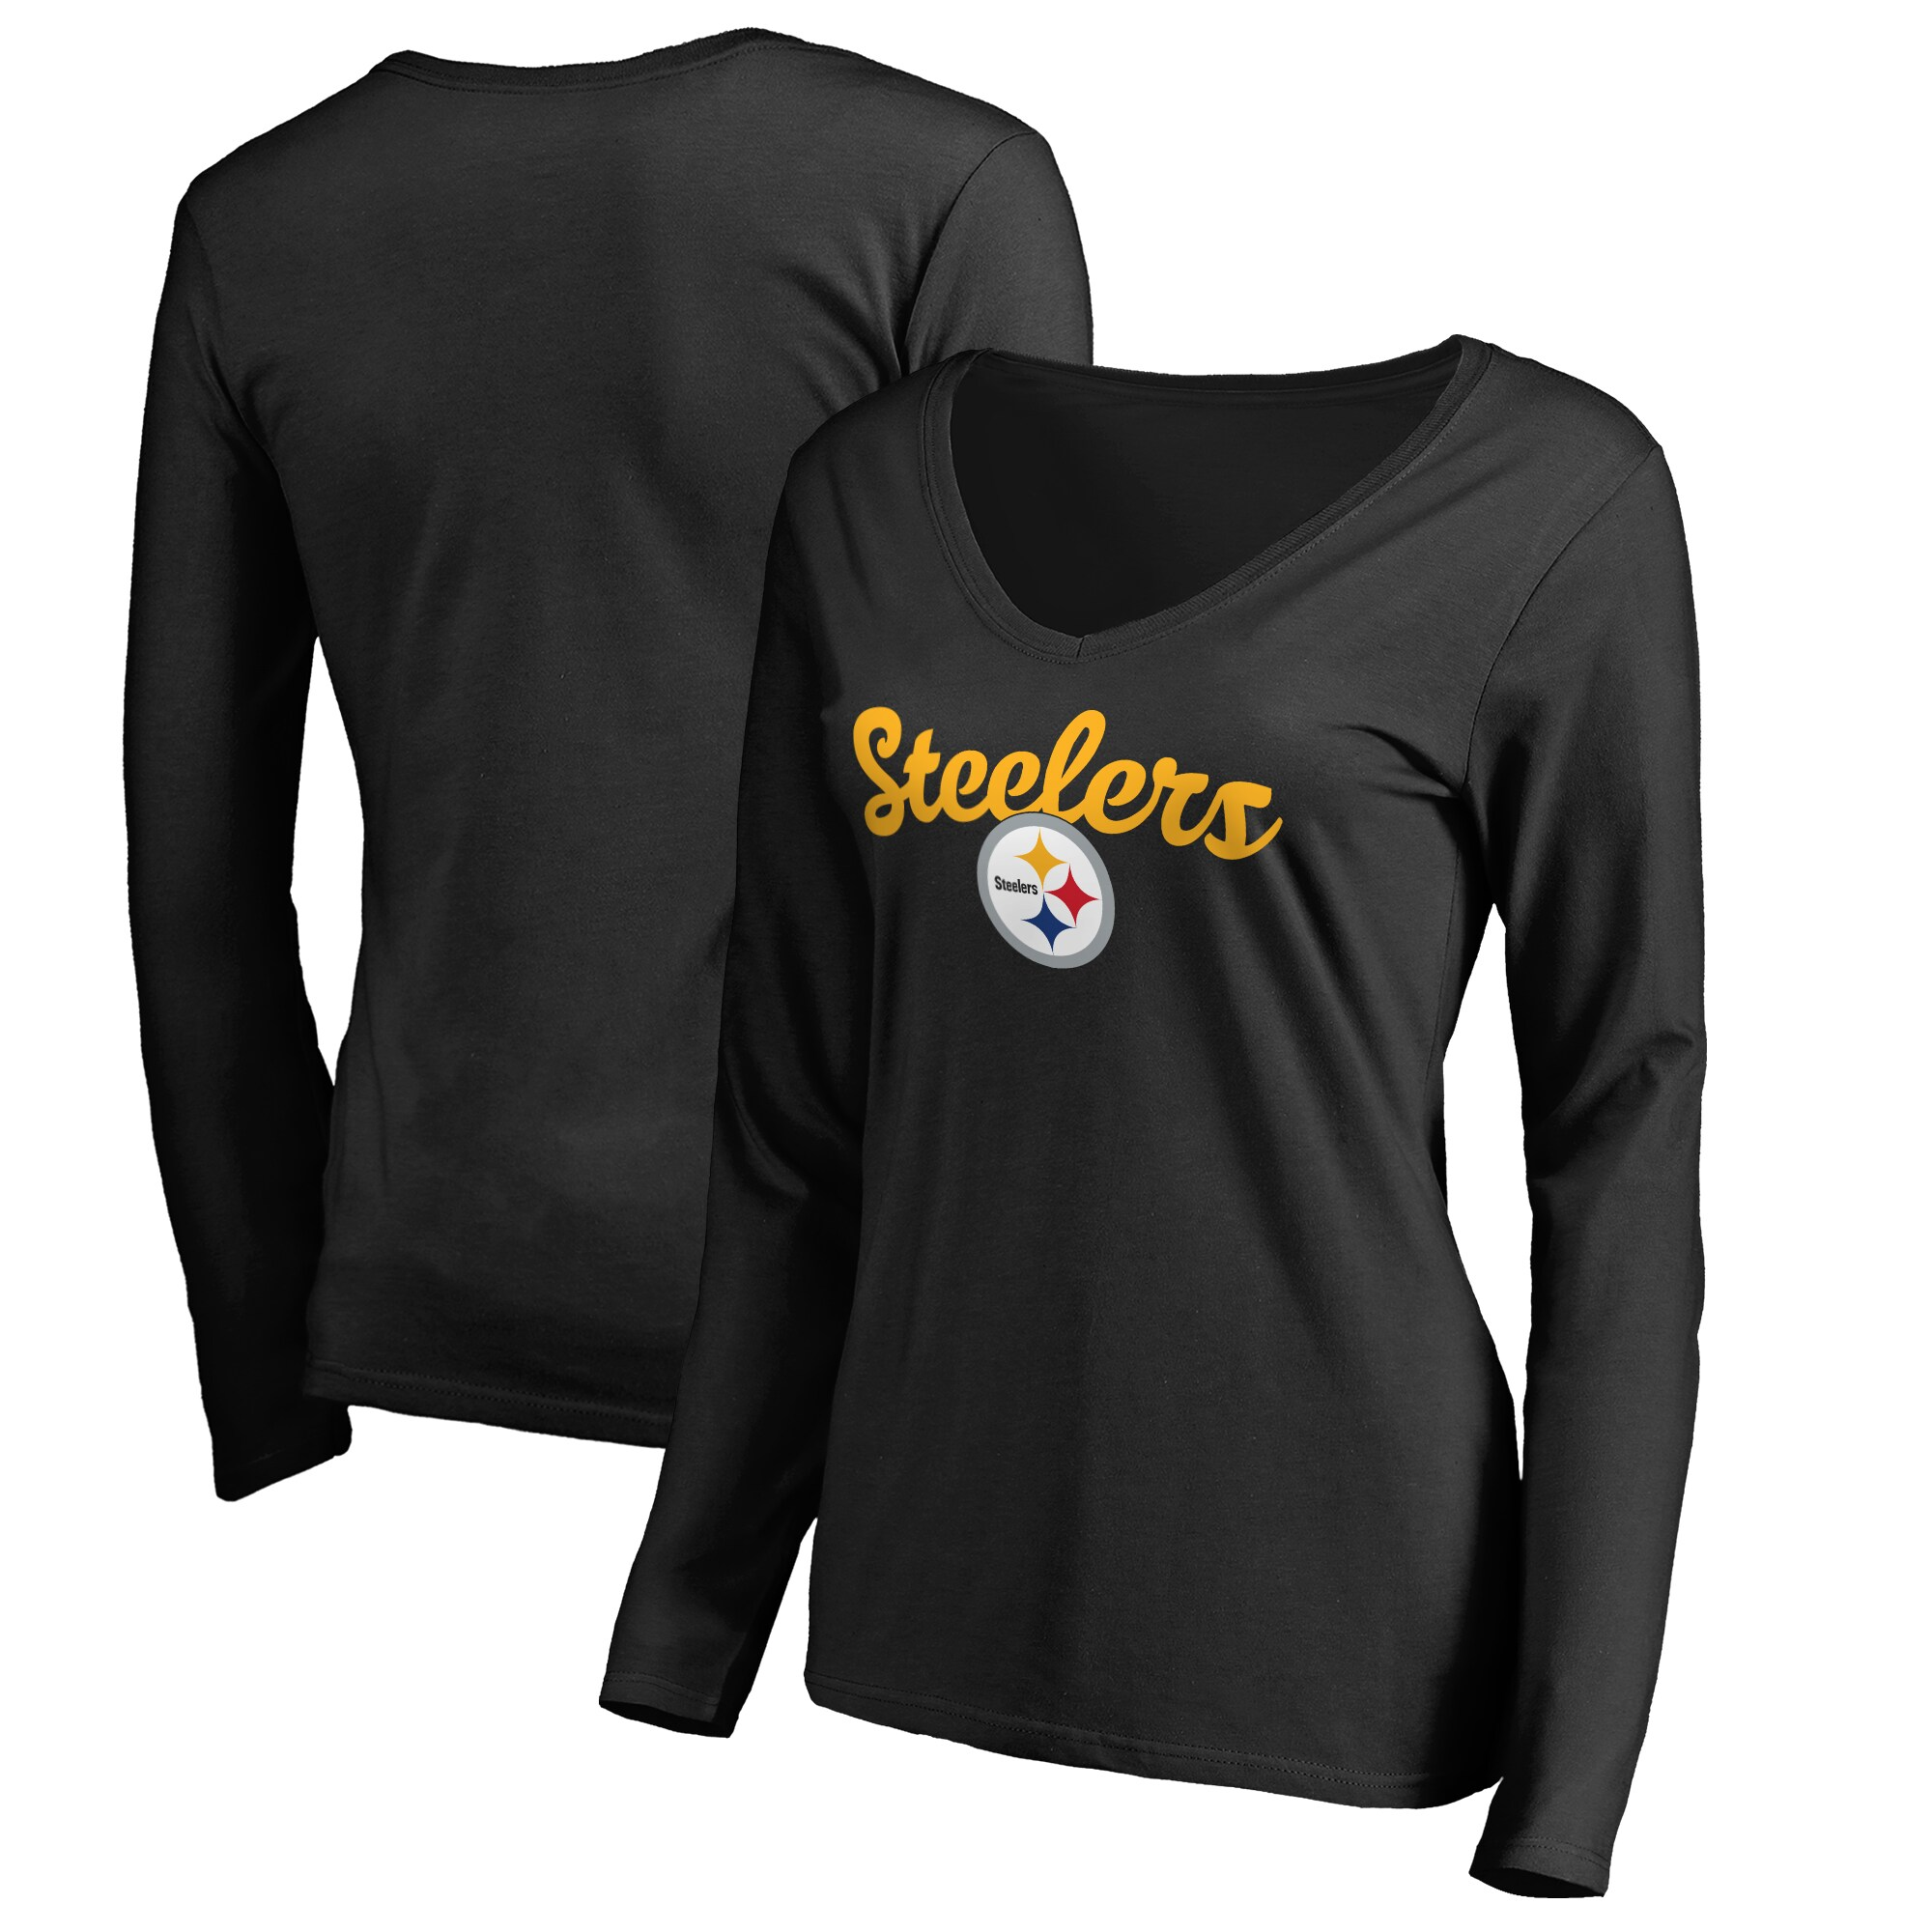 Pittsburgh Steelers Women's Plus Sizes Freehand Long Sleeve T-Shirt - Black